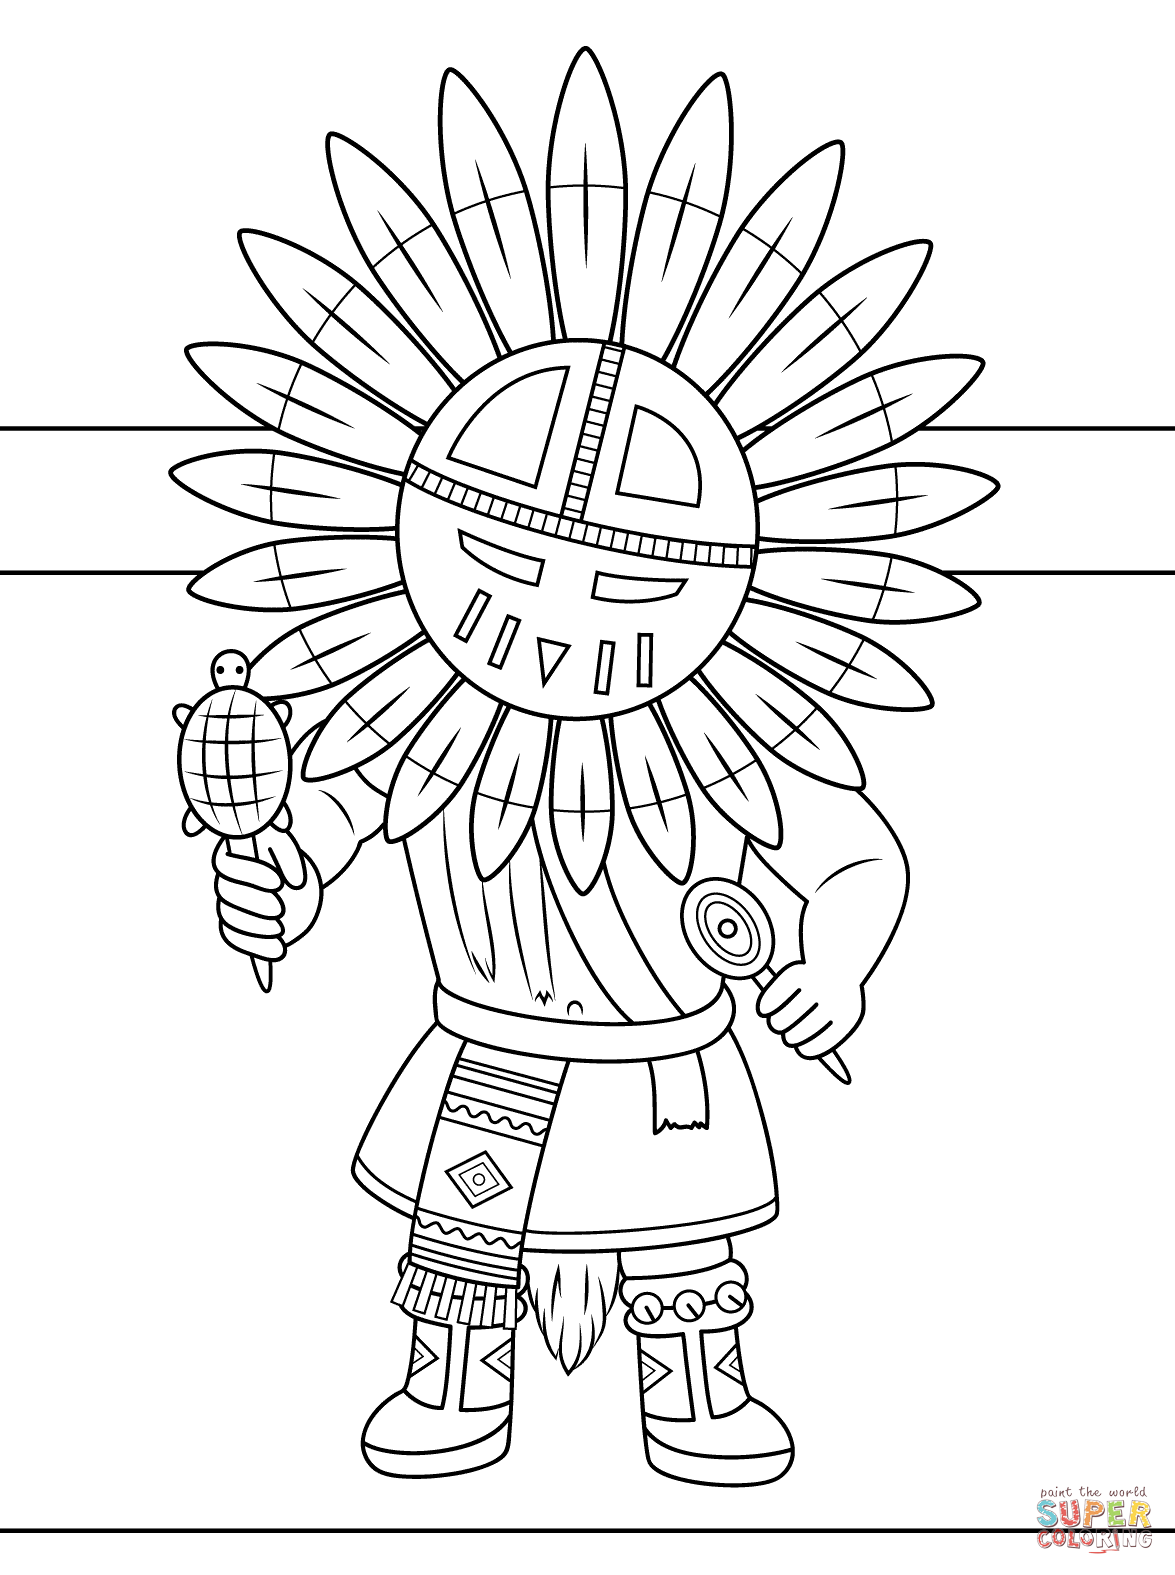 Kachina Doll Coloring Page